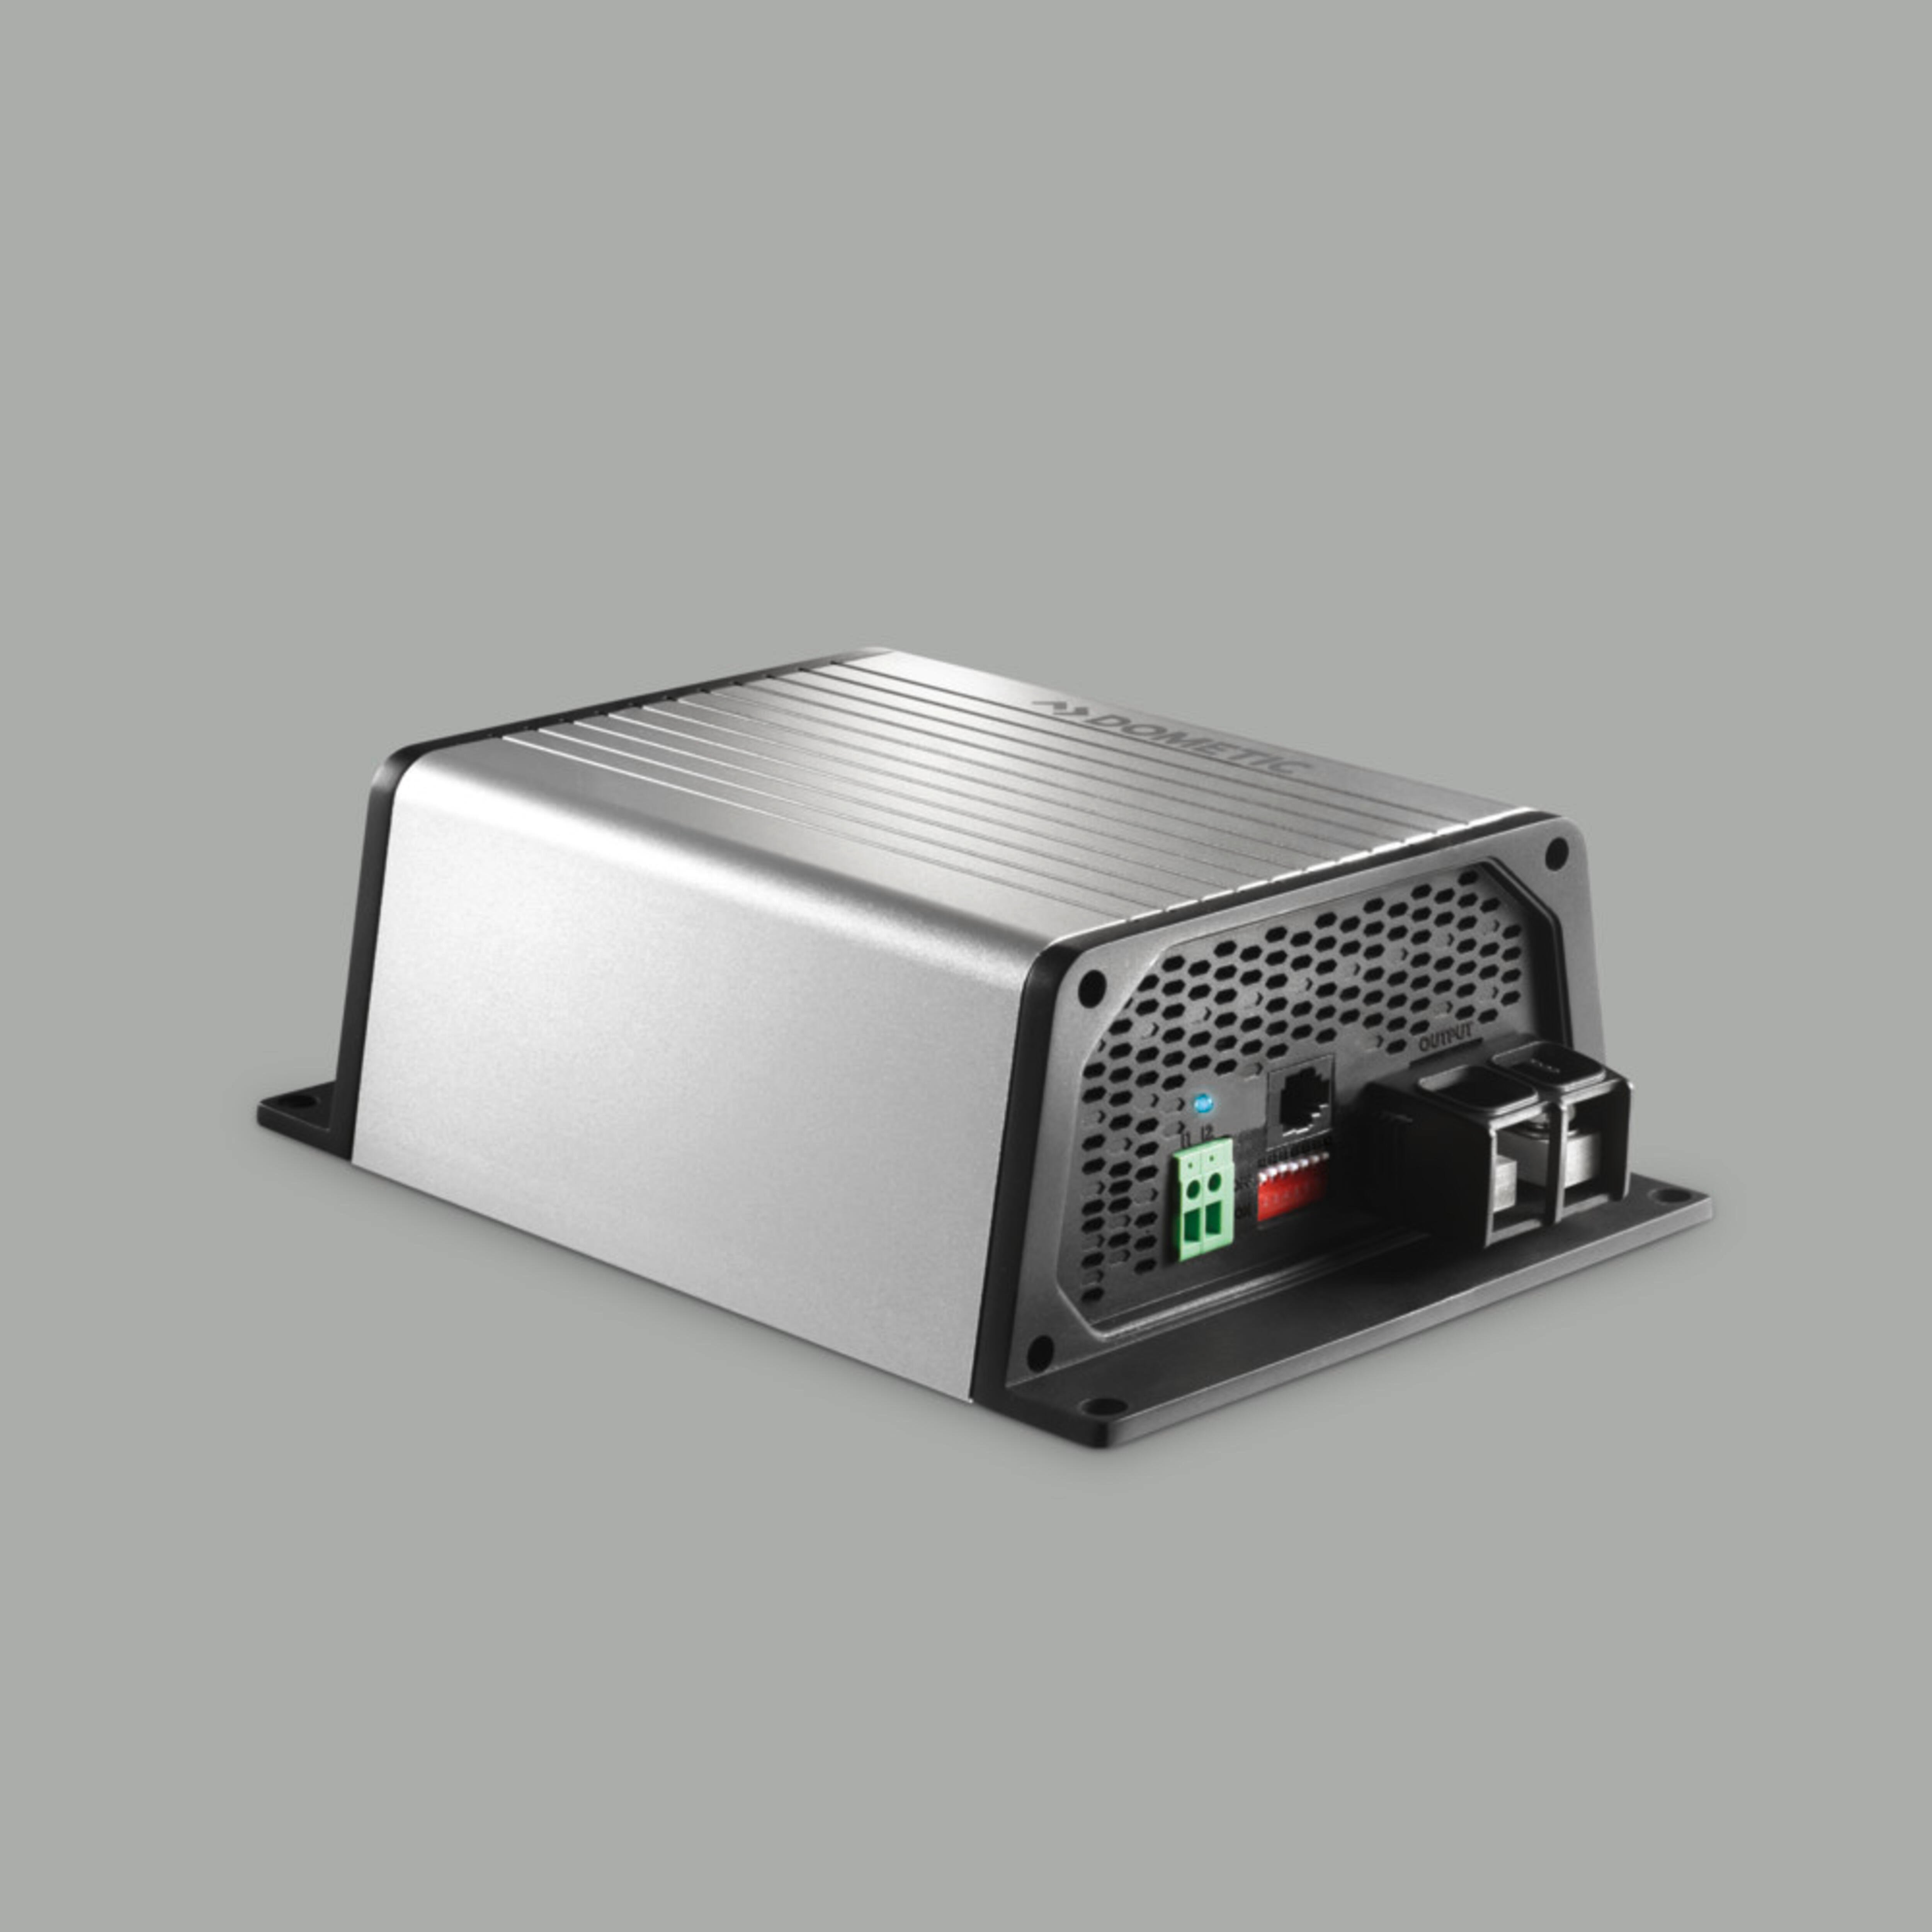 Dometic PerfectPower DCC 1212-10